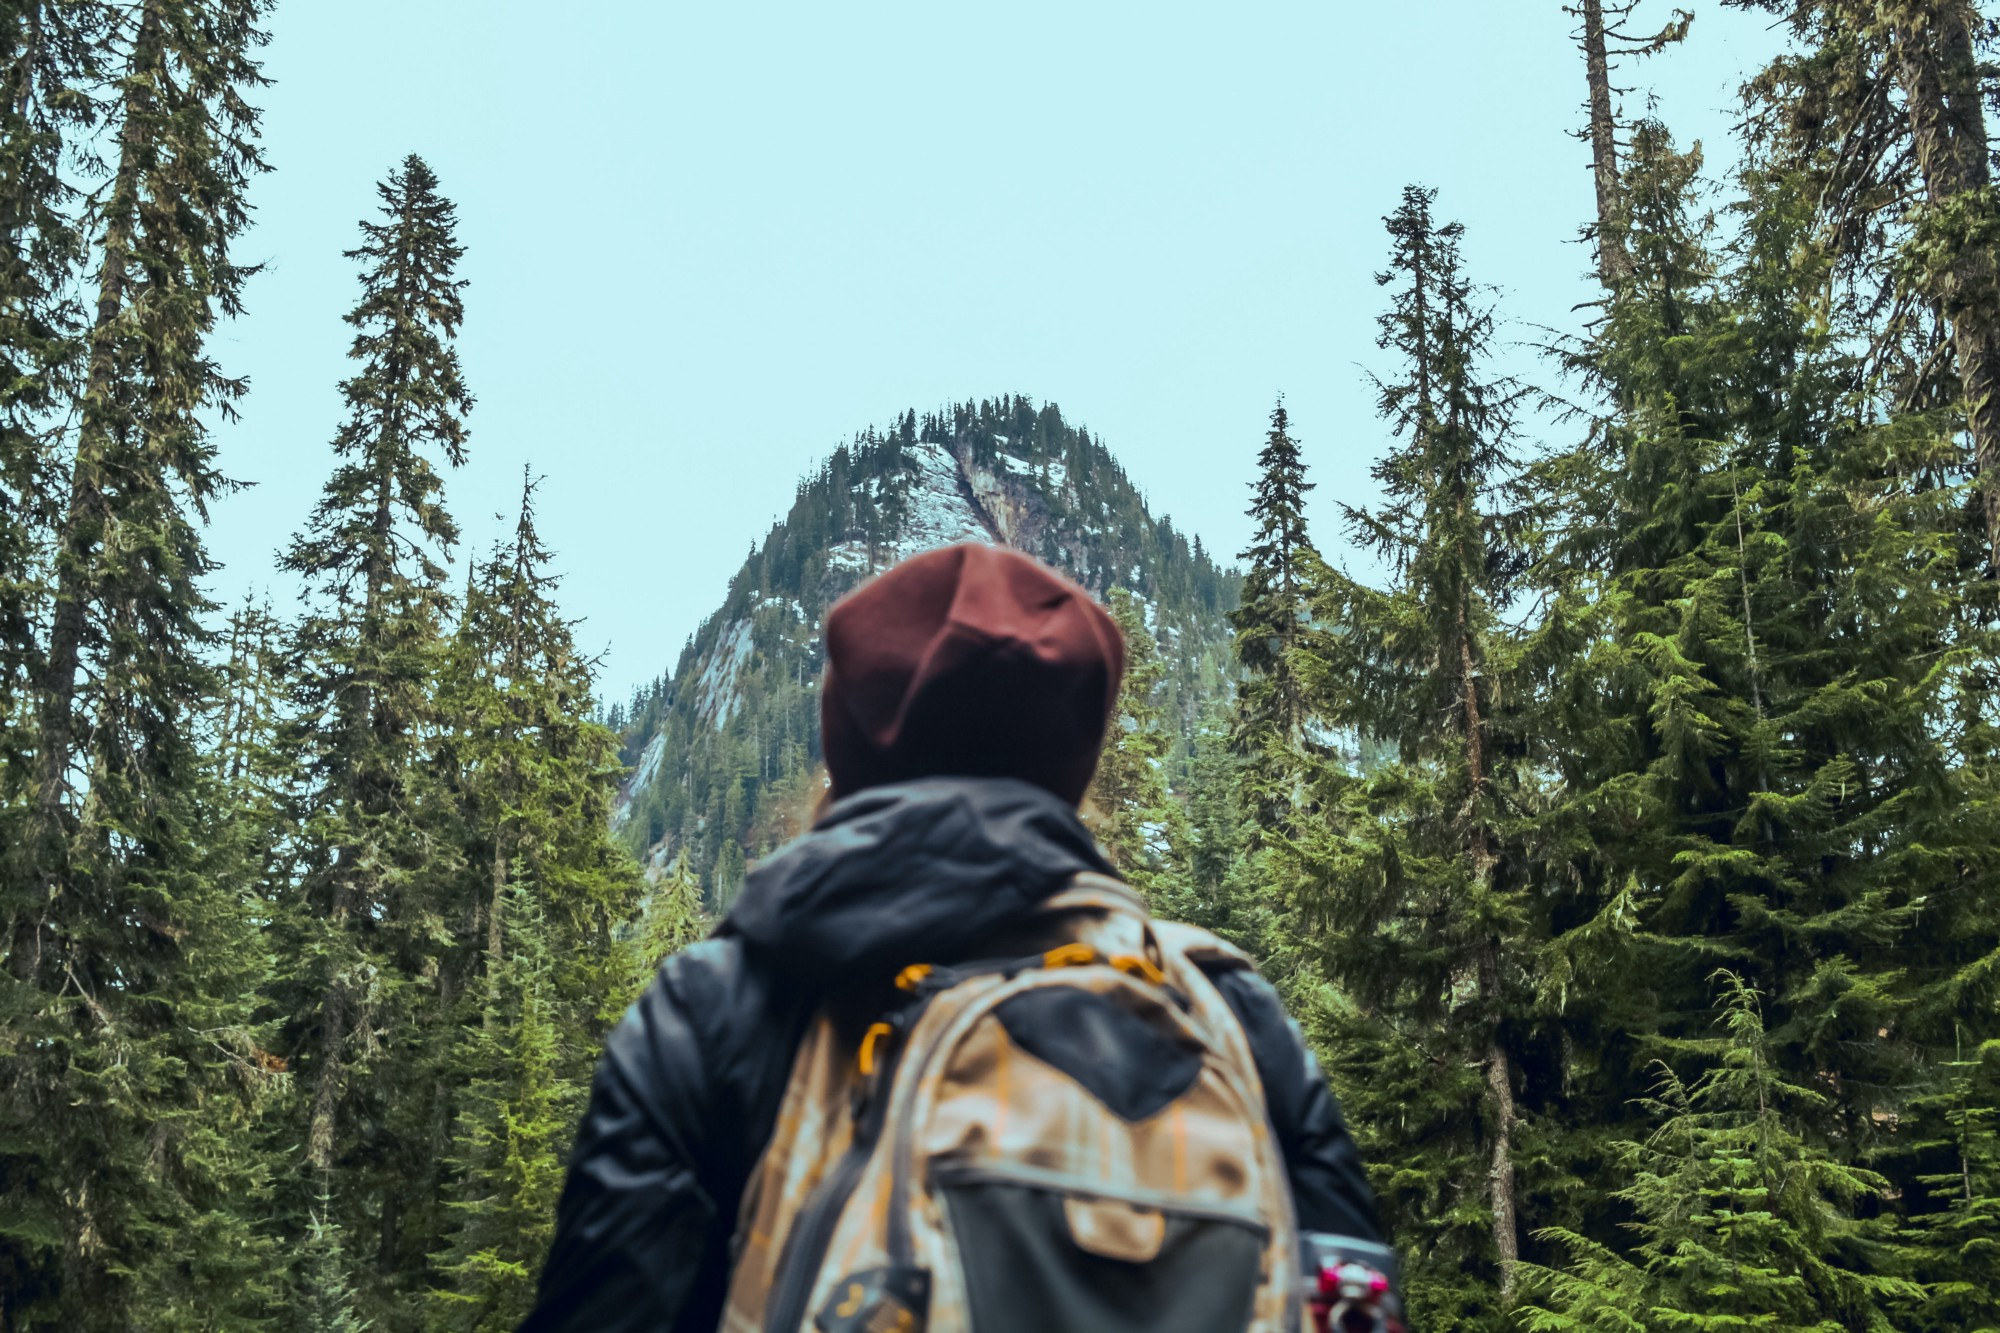 Back of female hiker between tall pine trees, looking at the summit of a mountain from the bottom.